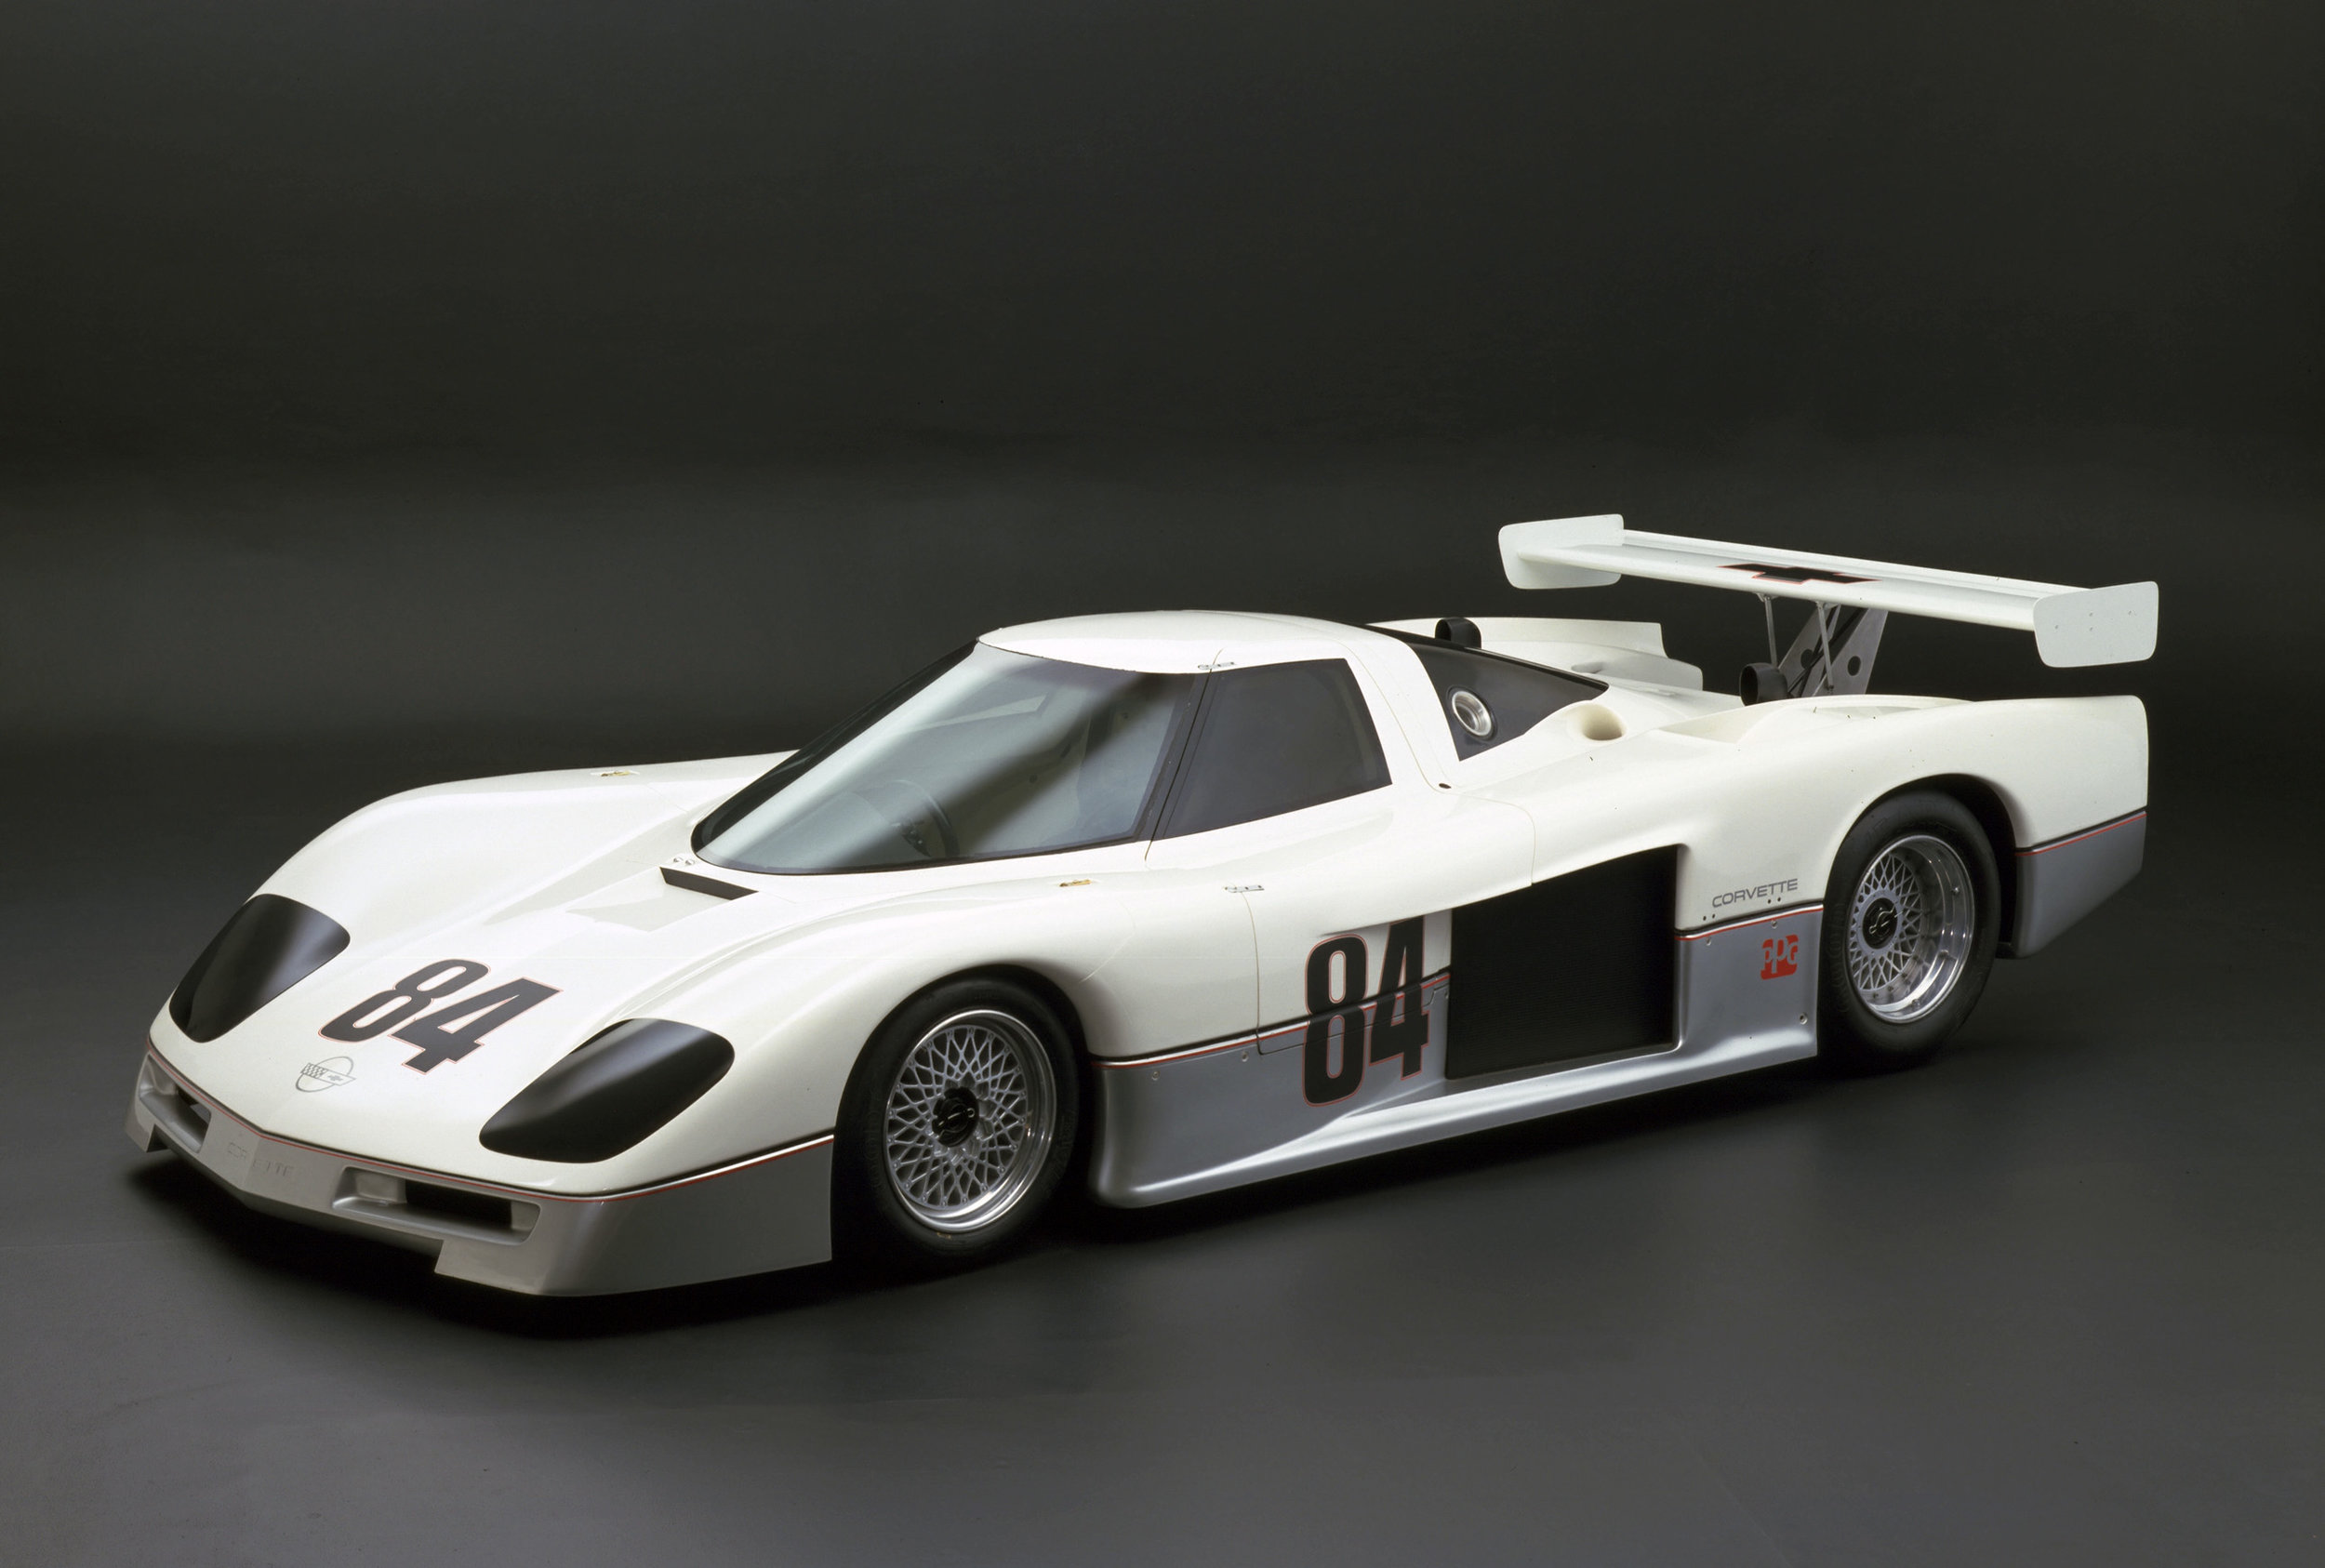 The Corvette GTP included styling cues from the road going models to elevate the brand.